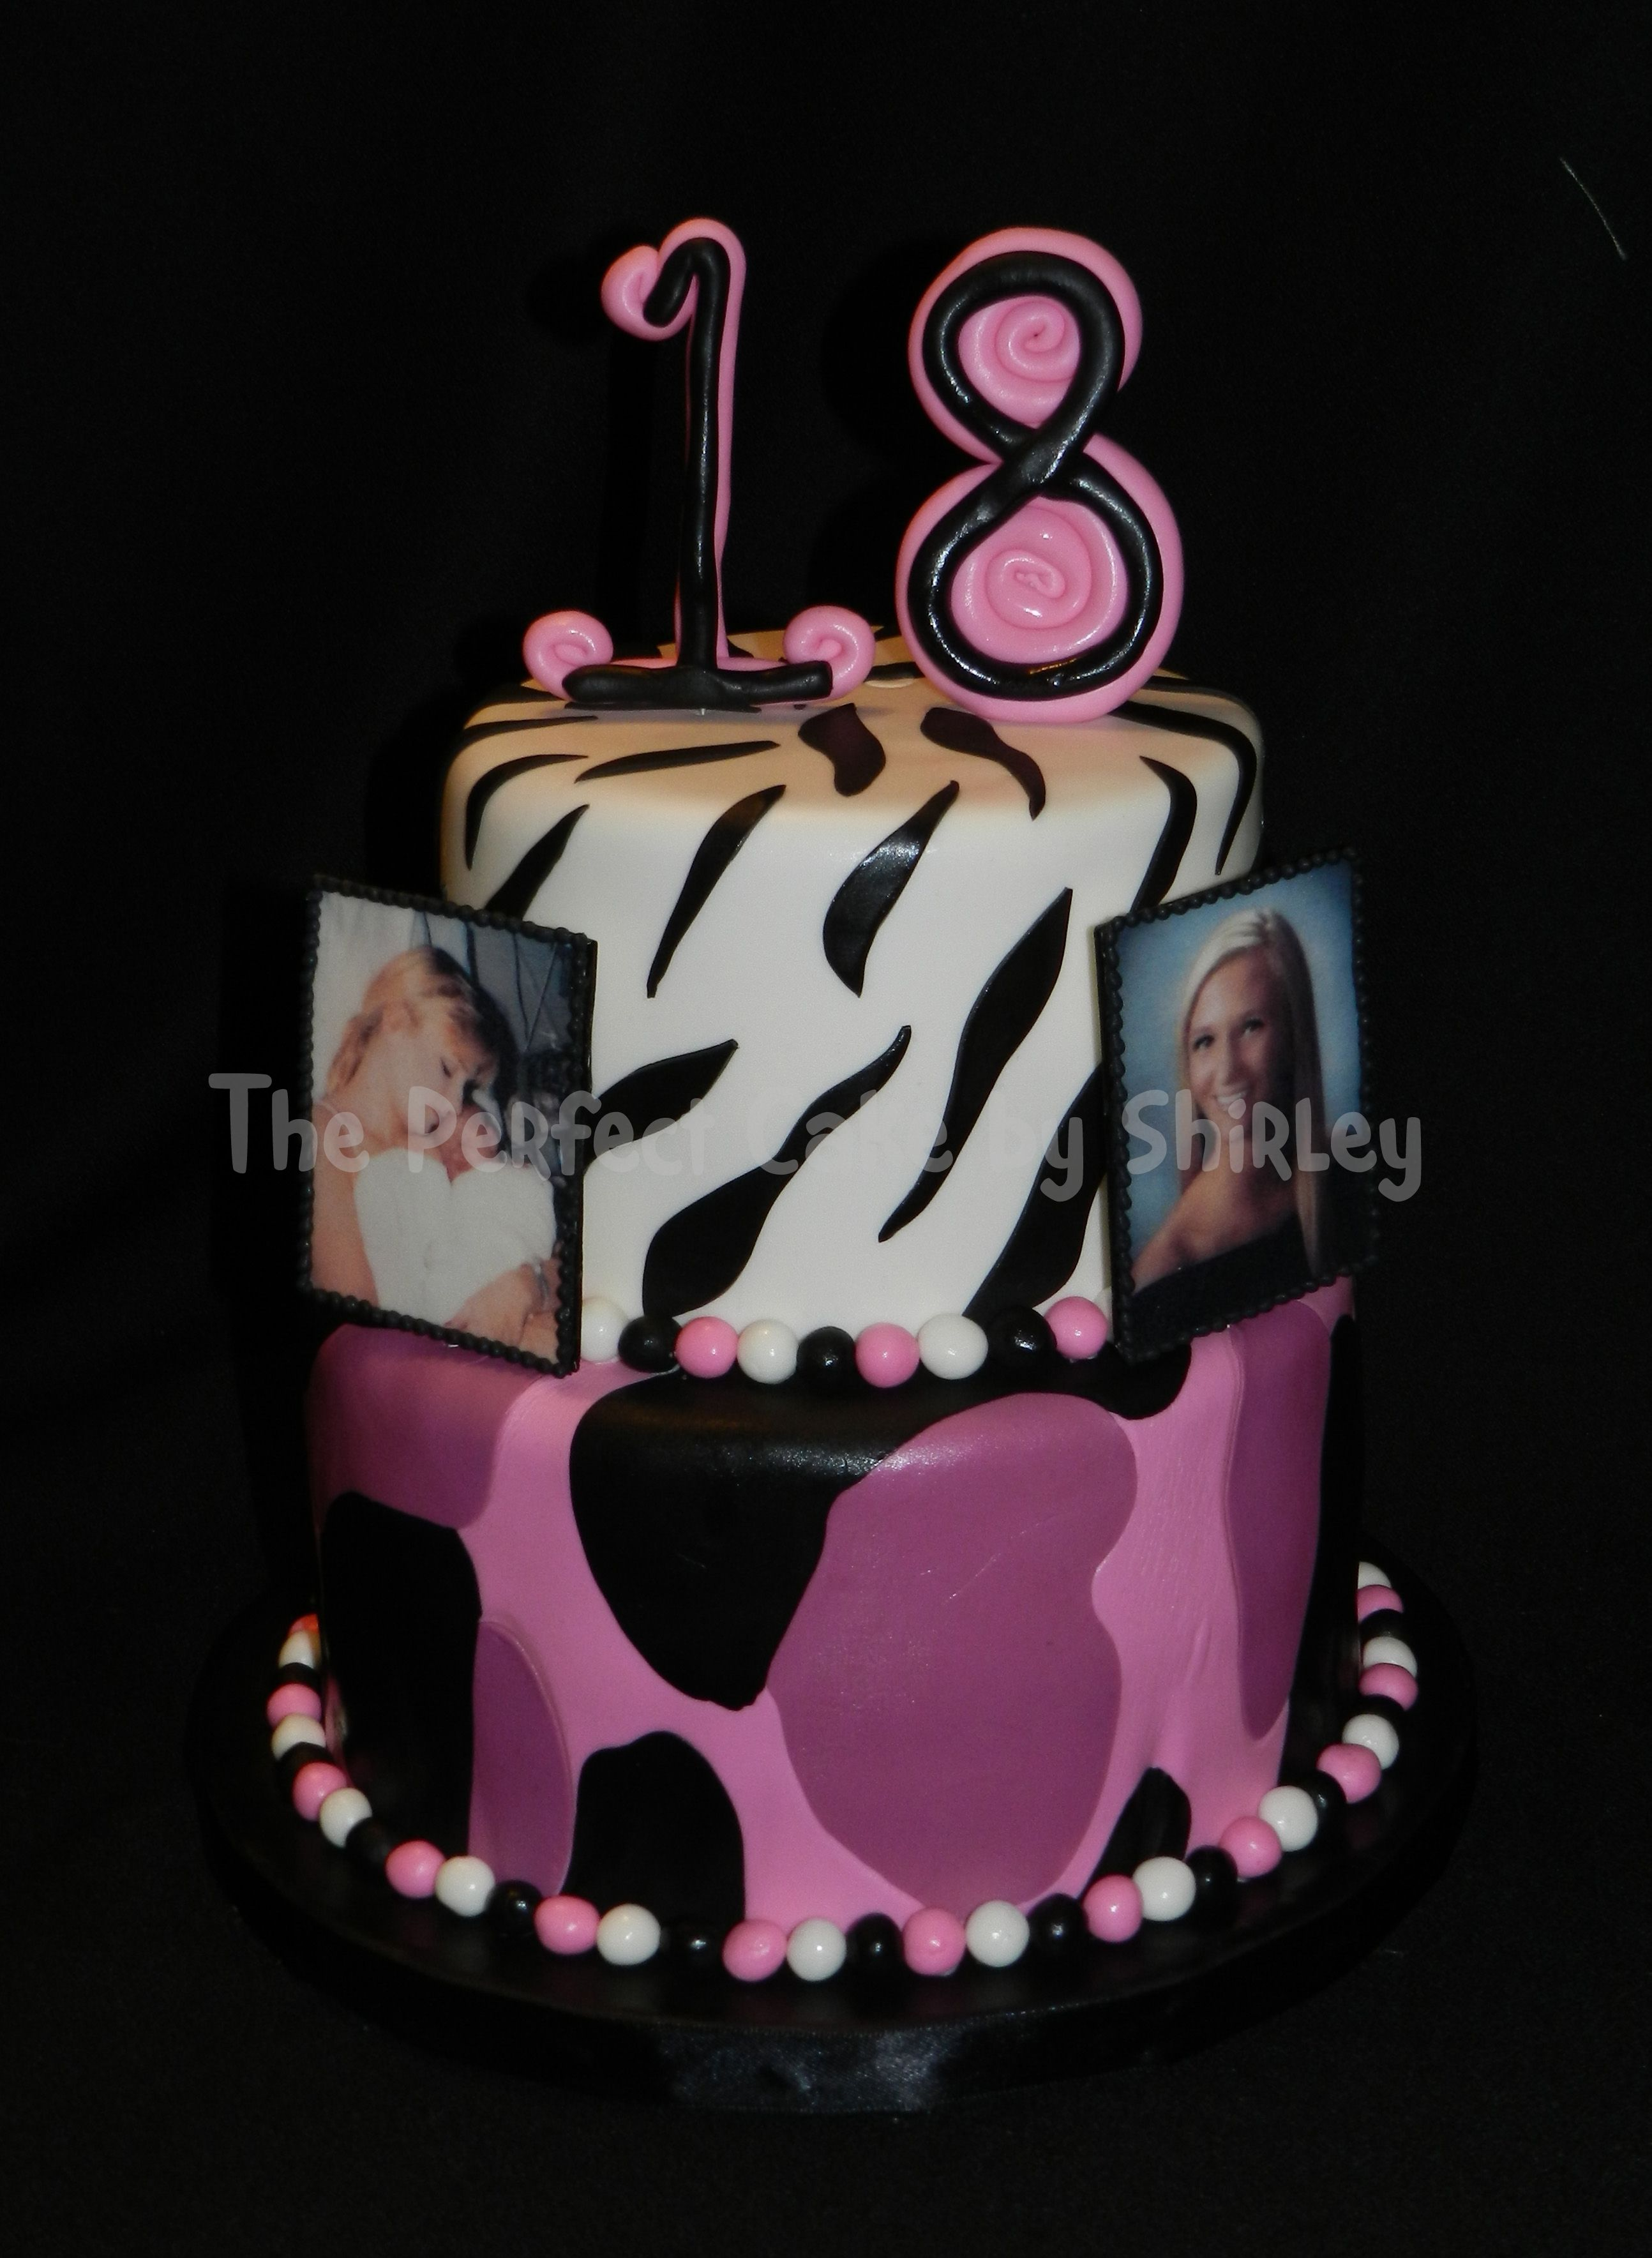 Pink camo 18th birthday cake 18th birthday cake for 18th birthday cake decoration ideas